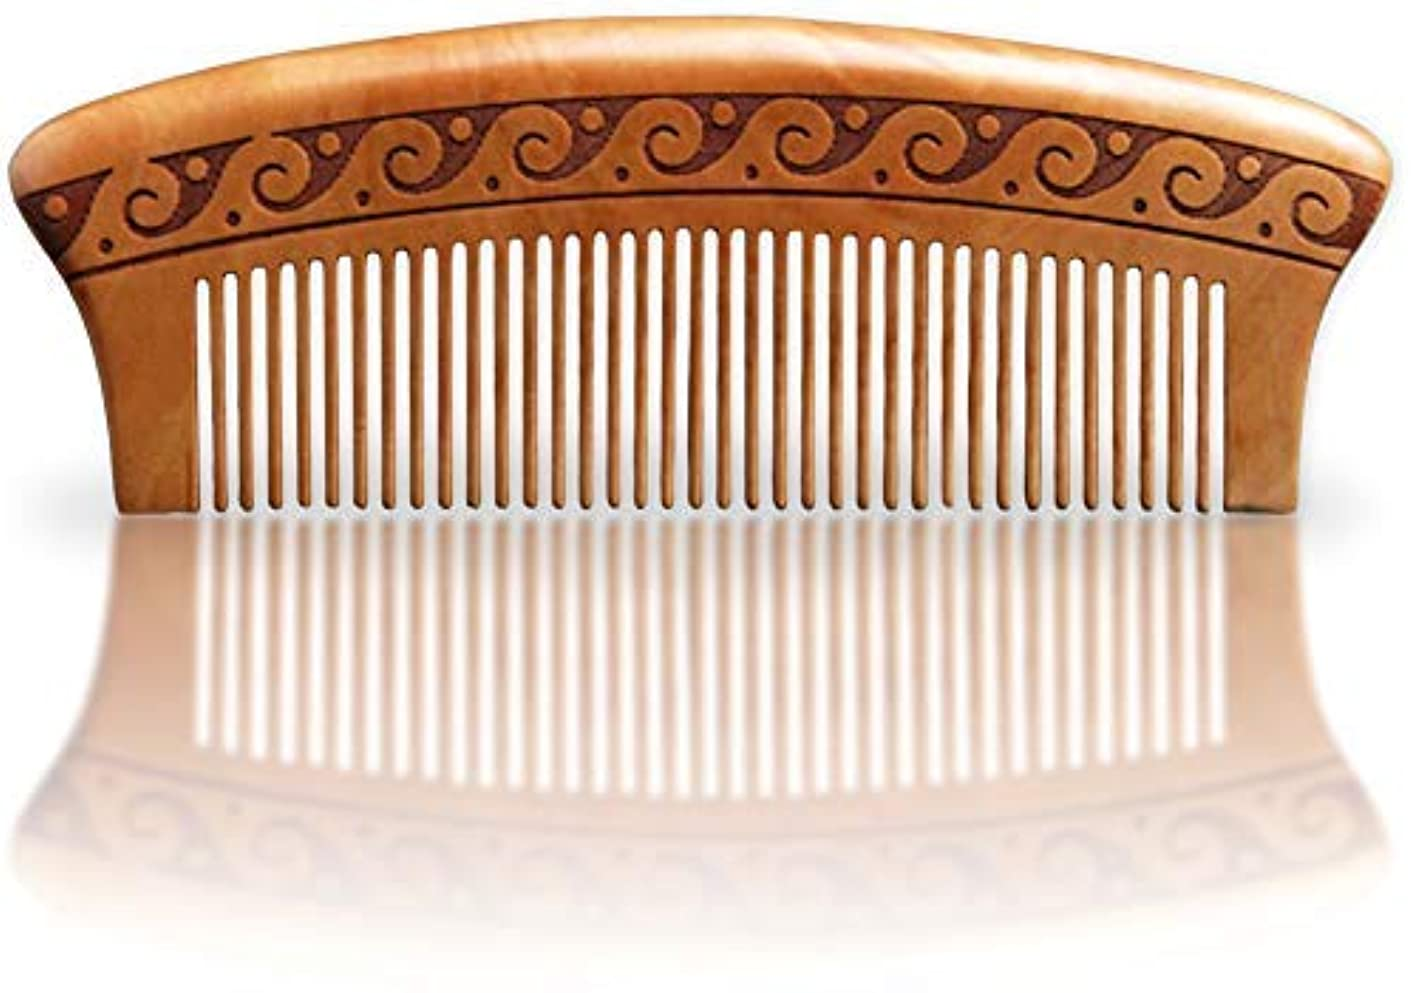 輪郭入学する泳ぐBRIGHTFROM Wooden Hair Comb, Anti-Static, Detangling, Great for Hair, Beard, Mustache, Natural Peach Wood [並行輸入品]